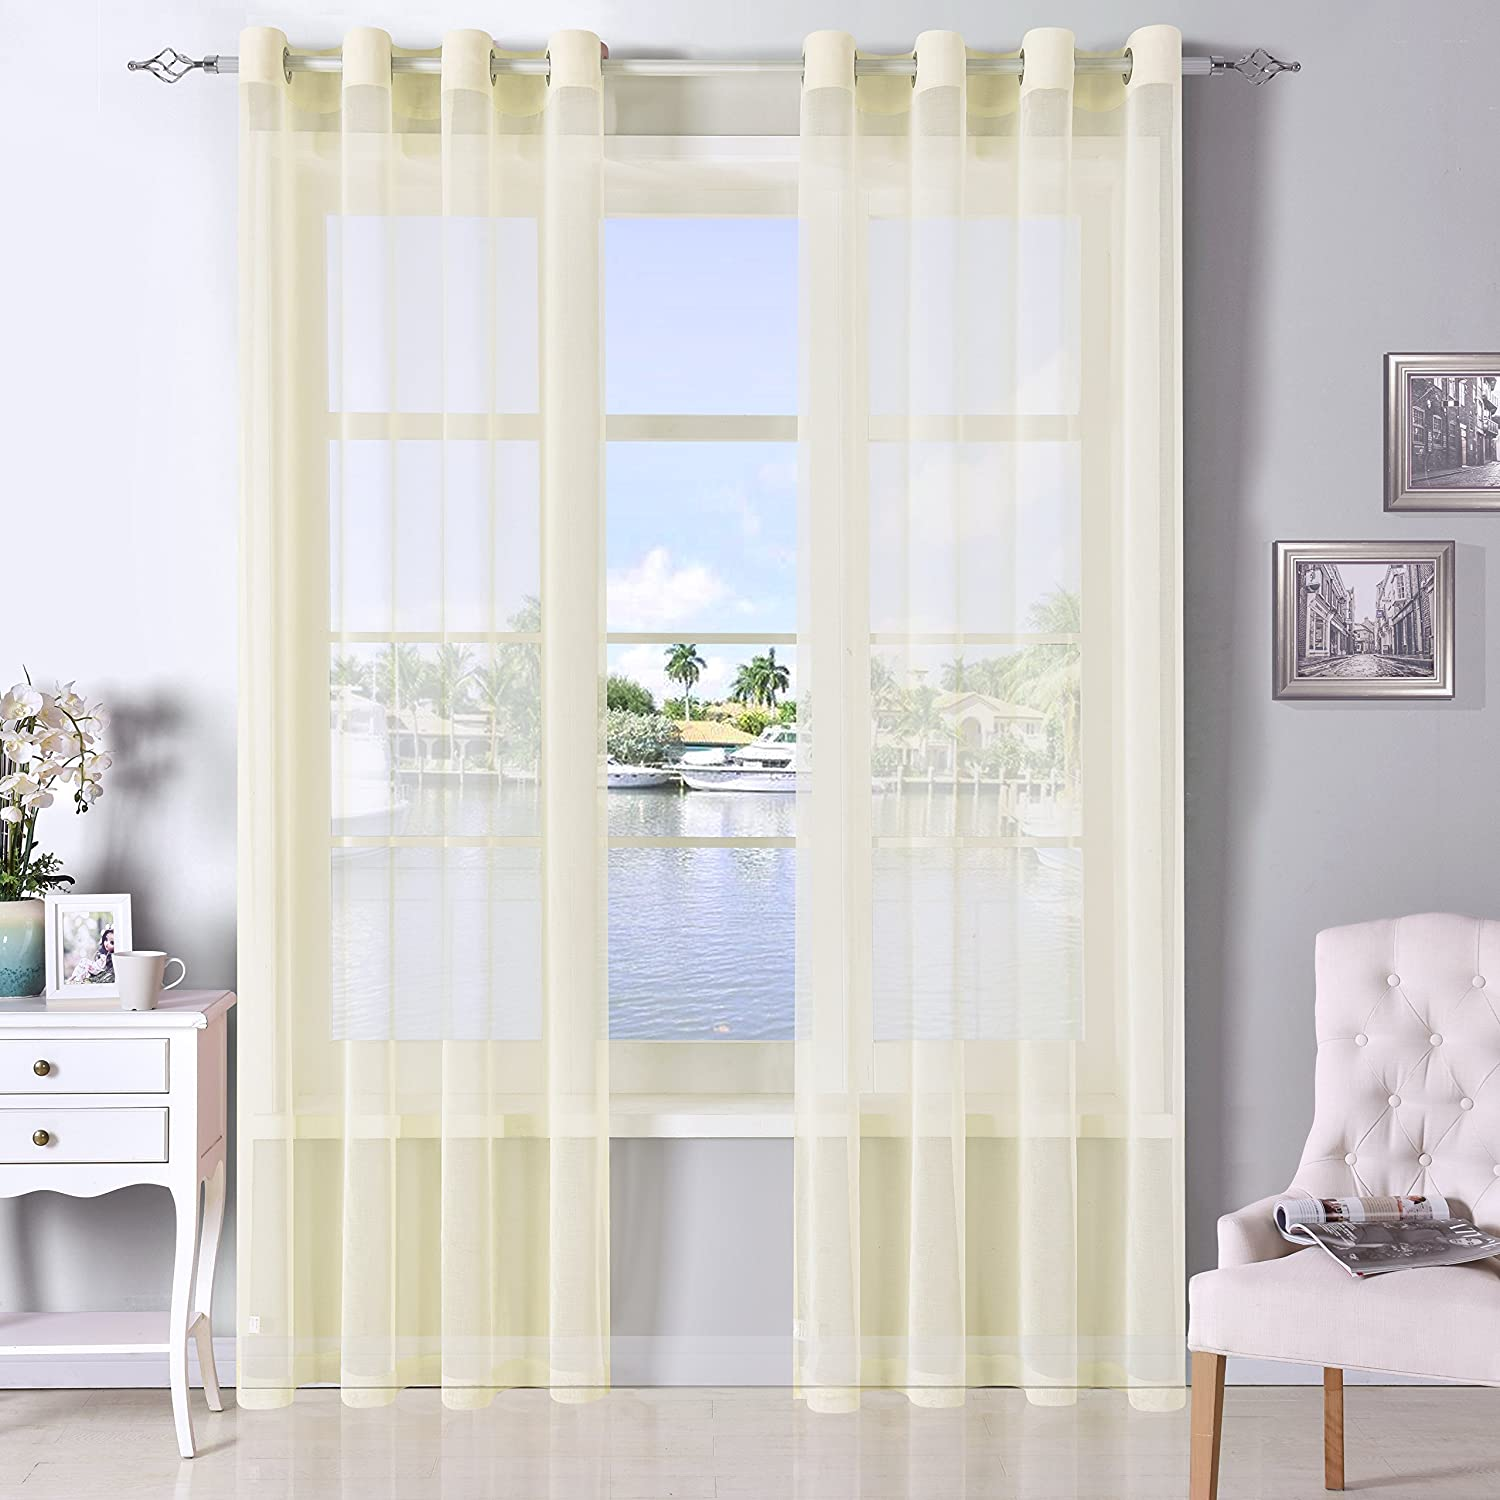 Amazoncom Dwcn Ivory Sheer Curtains Linen Look Semi Transparent Voile